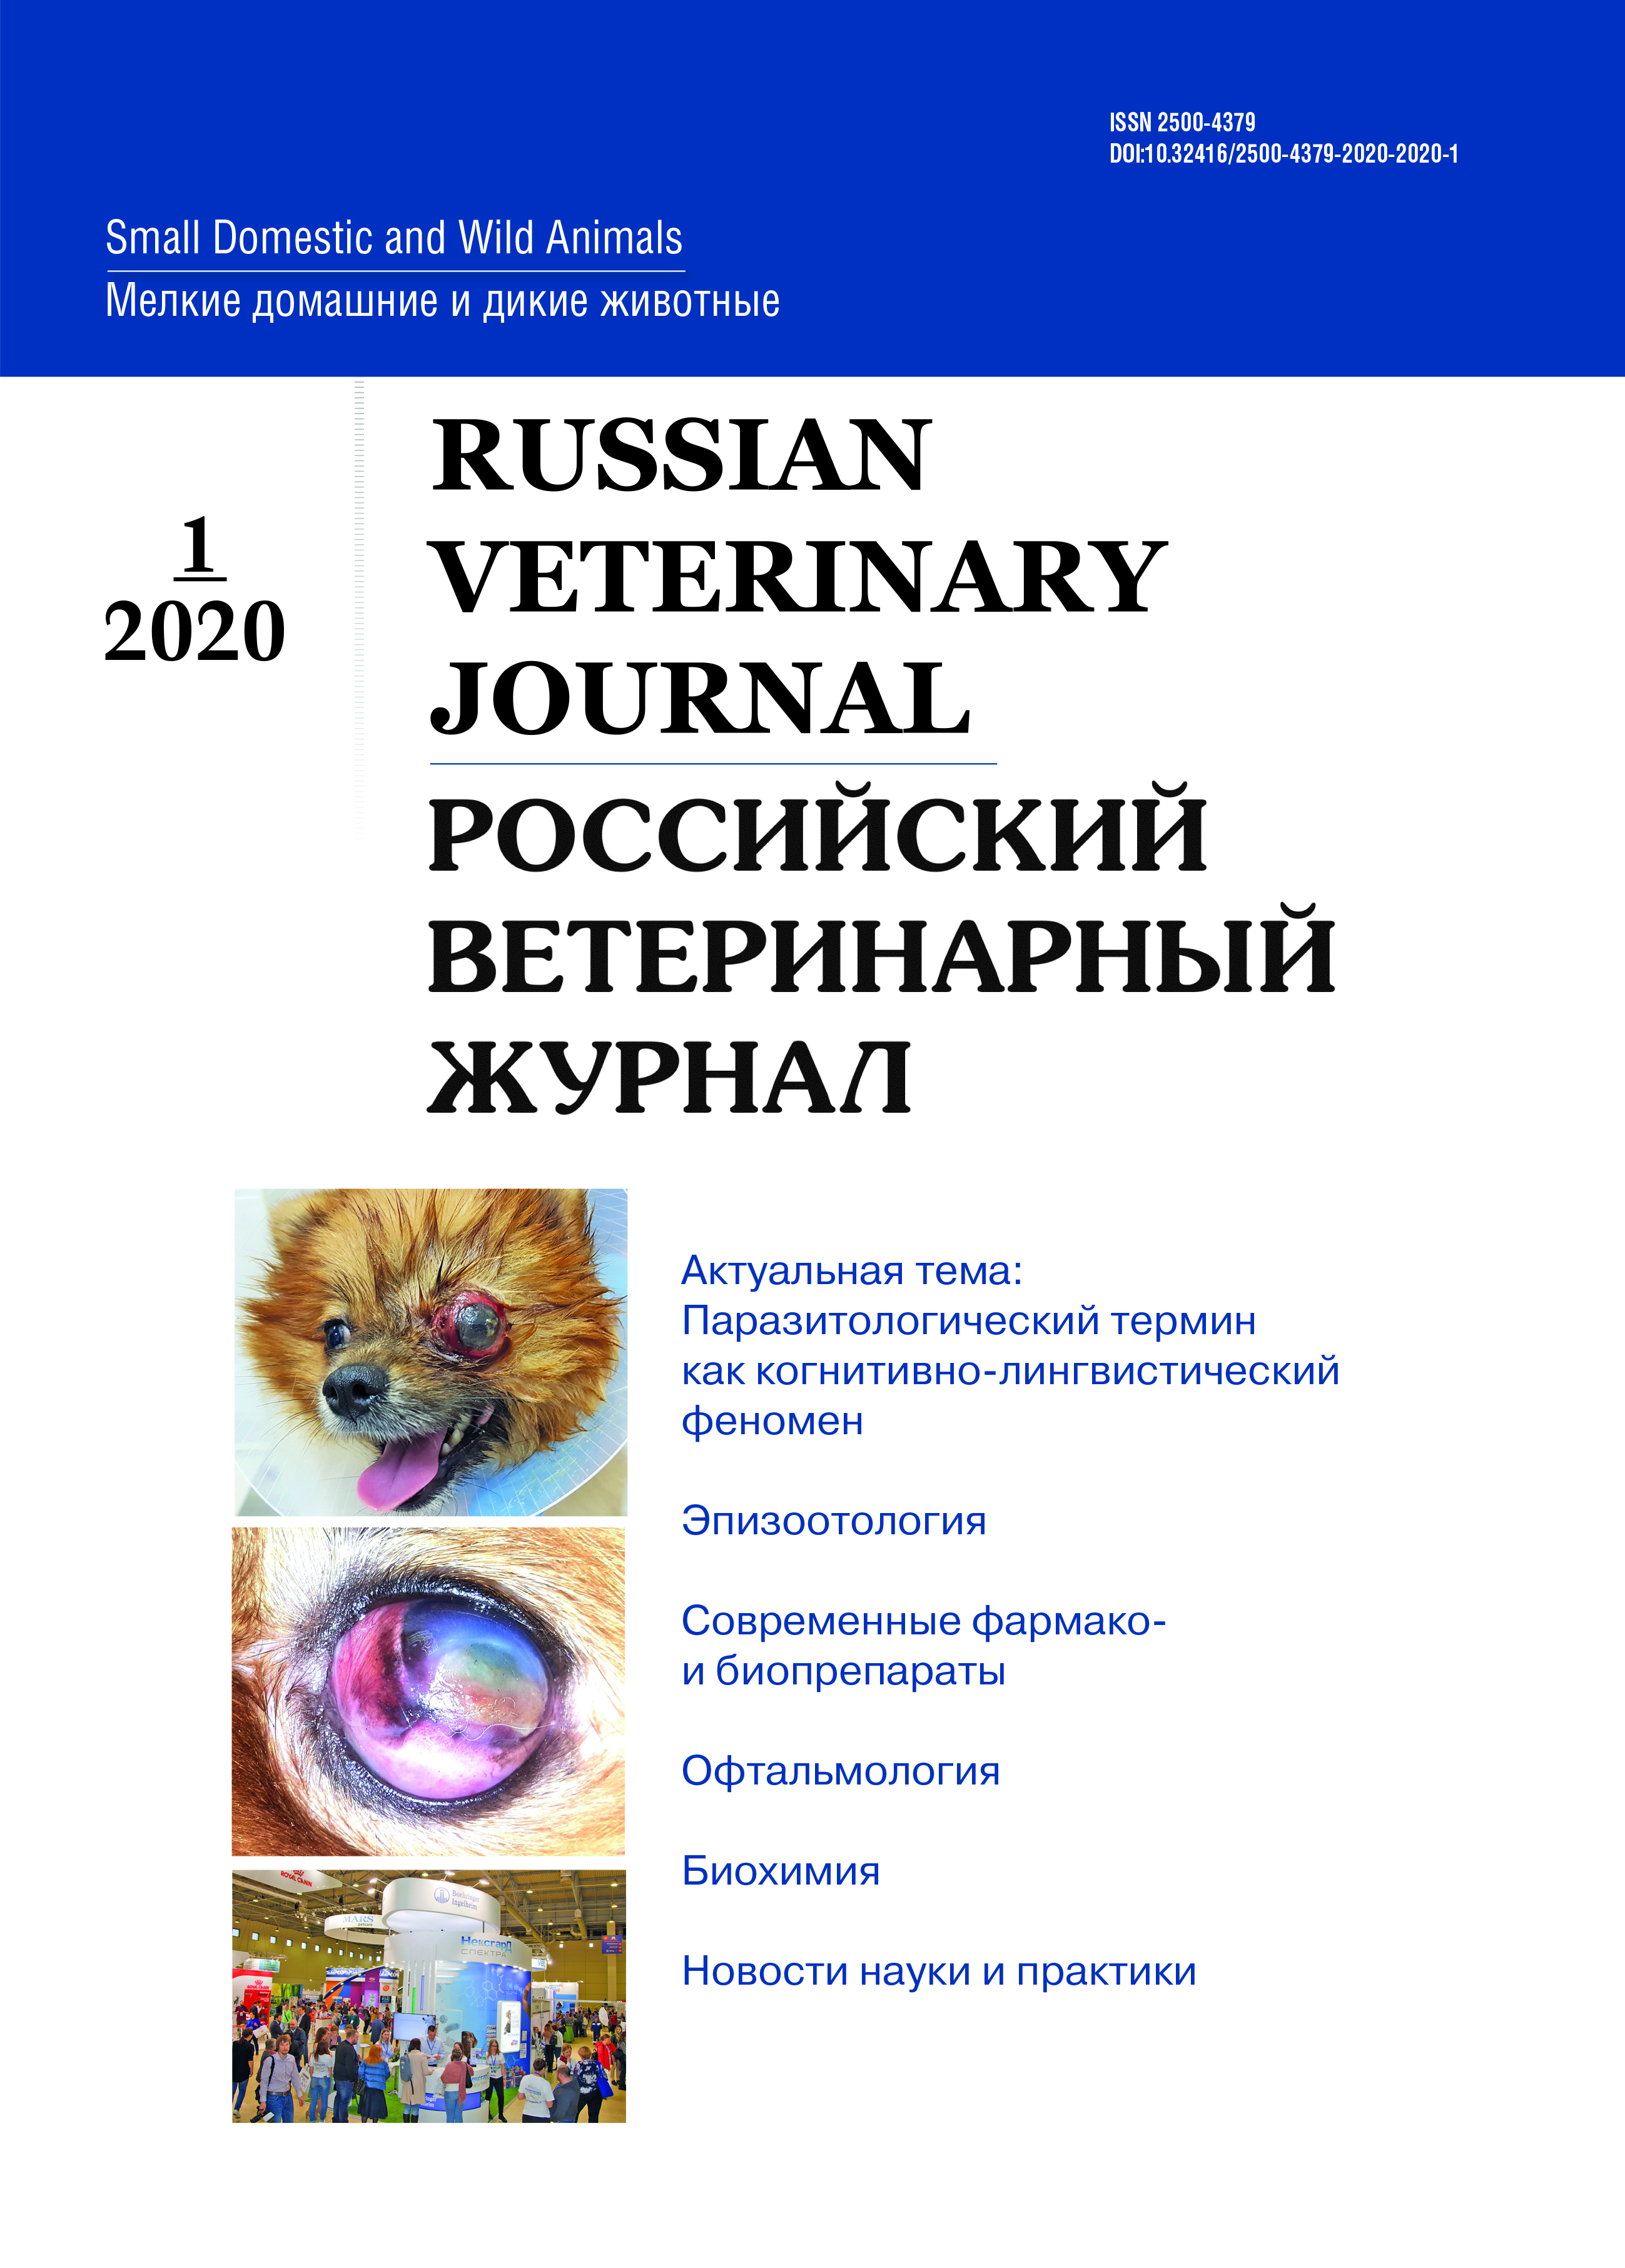 Prevalence of causative agents of respiratory infections in cats and dogs in Russia